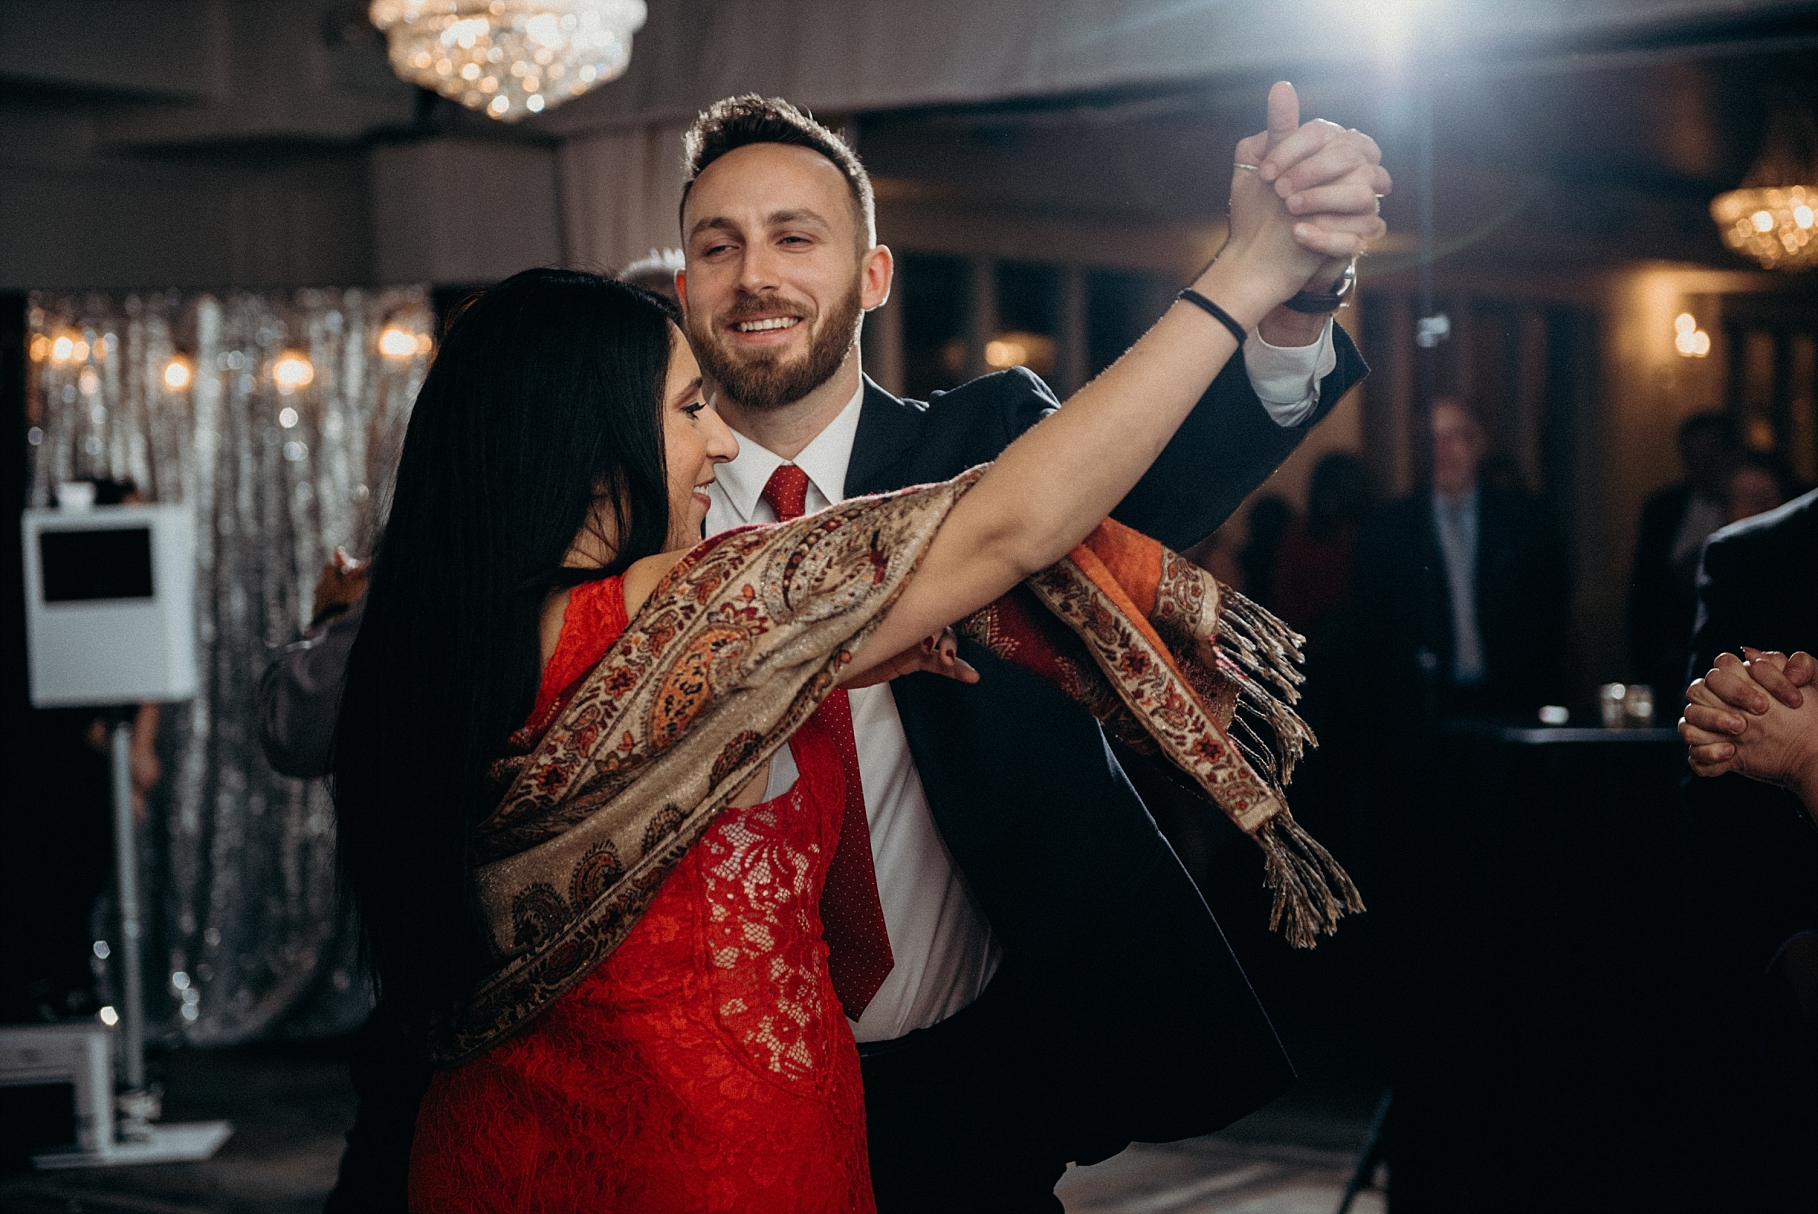 Orchard View Wedding by Mocha Tree Studios Ottawa Wedding and Engagement Photographer and Videographer Dark Moody Intimate Authentic Modern Romantic Cinematic Best Candid 44